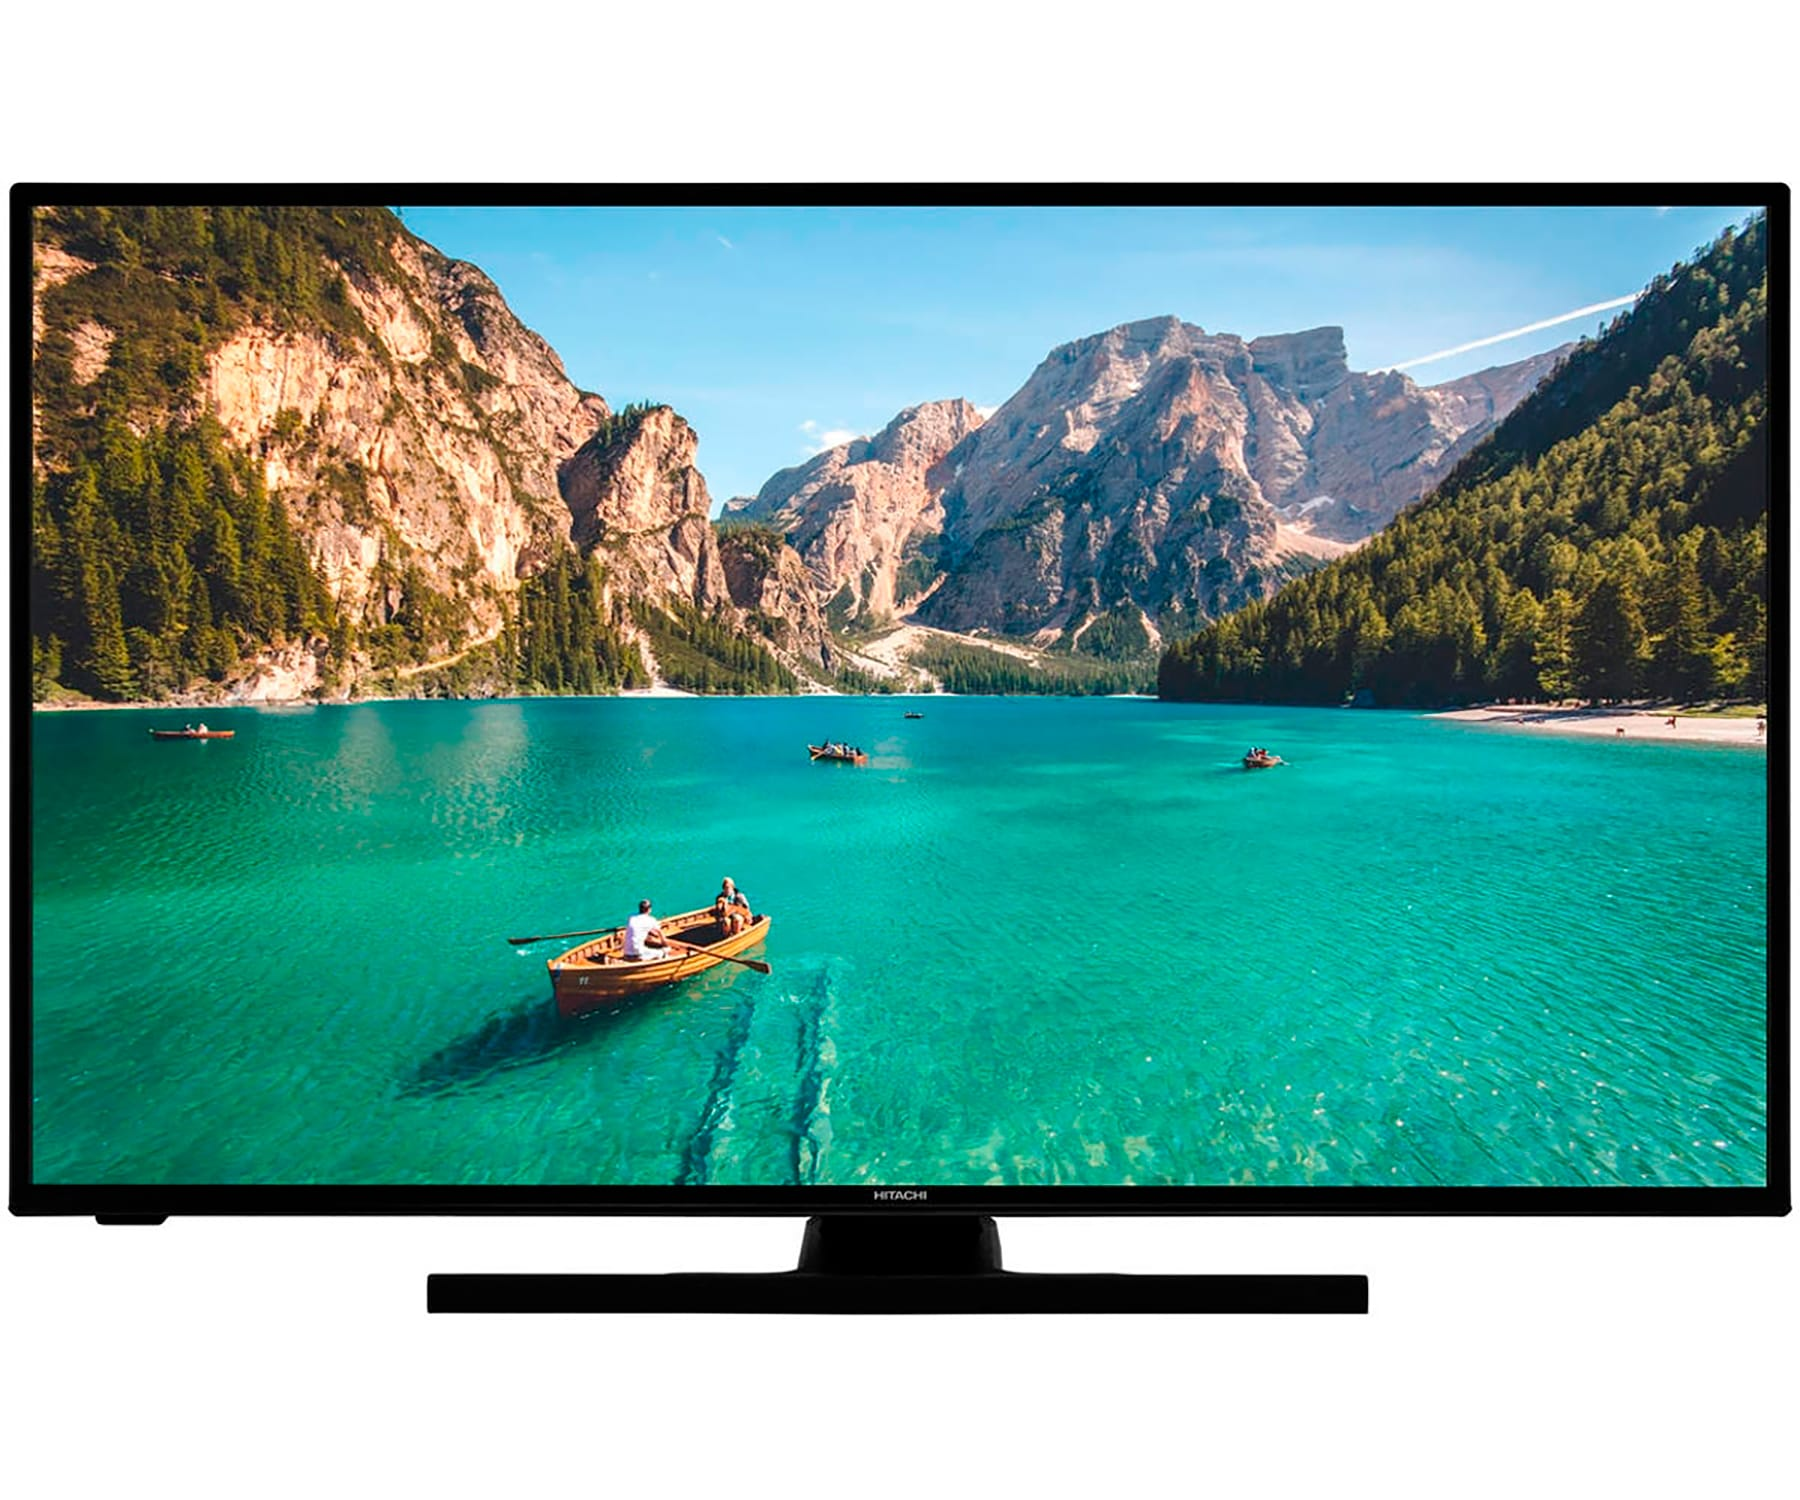 HITACHI 32HE2200 TELEVISOR 32'' LED HD READY HDR SMART TV 700BPI HDMI USB CON GOOGLE ASSISTANT